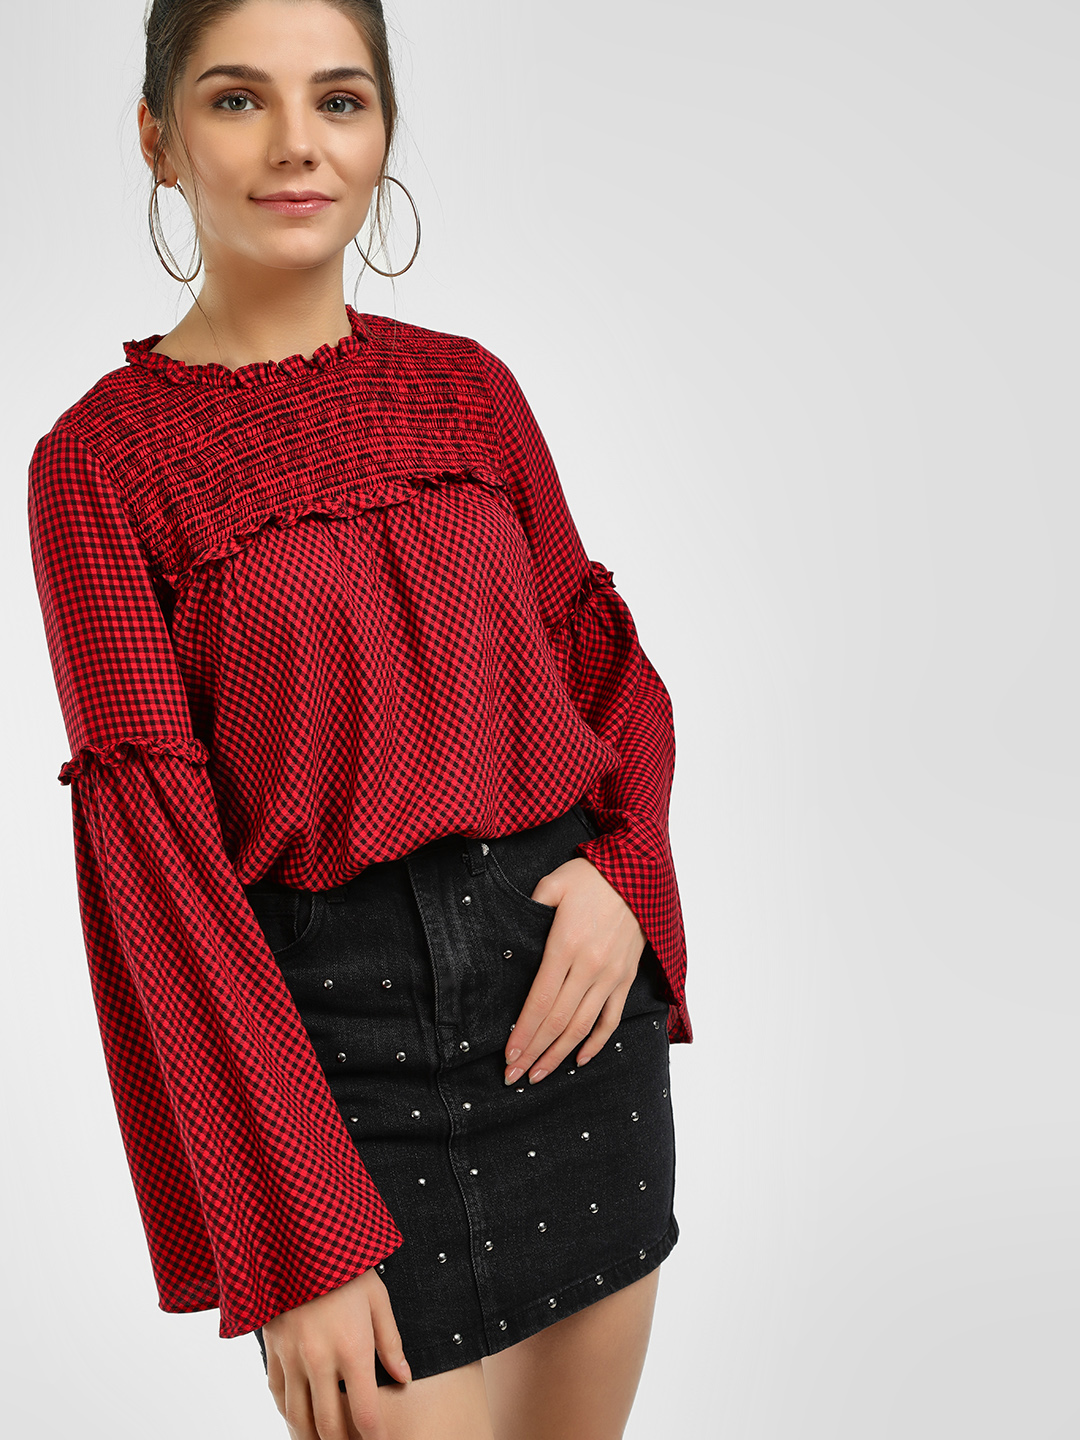 UMM Red Micro Check Flared Sleeve Blouse 1